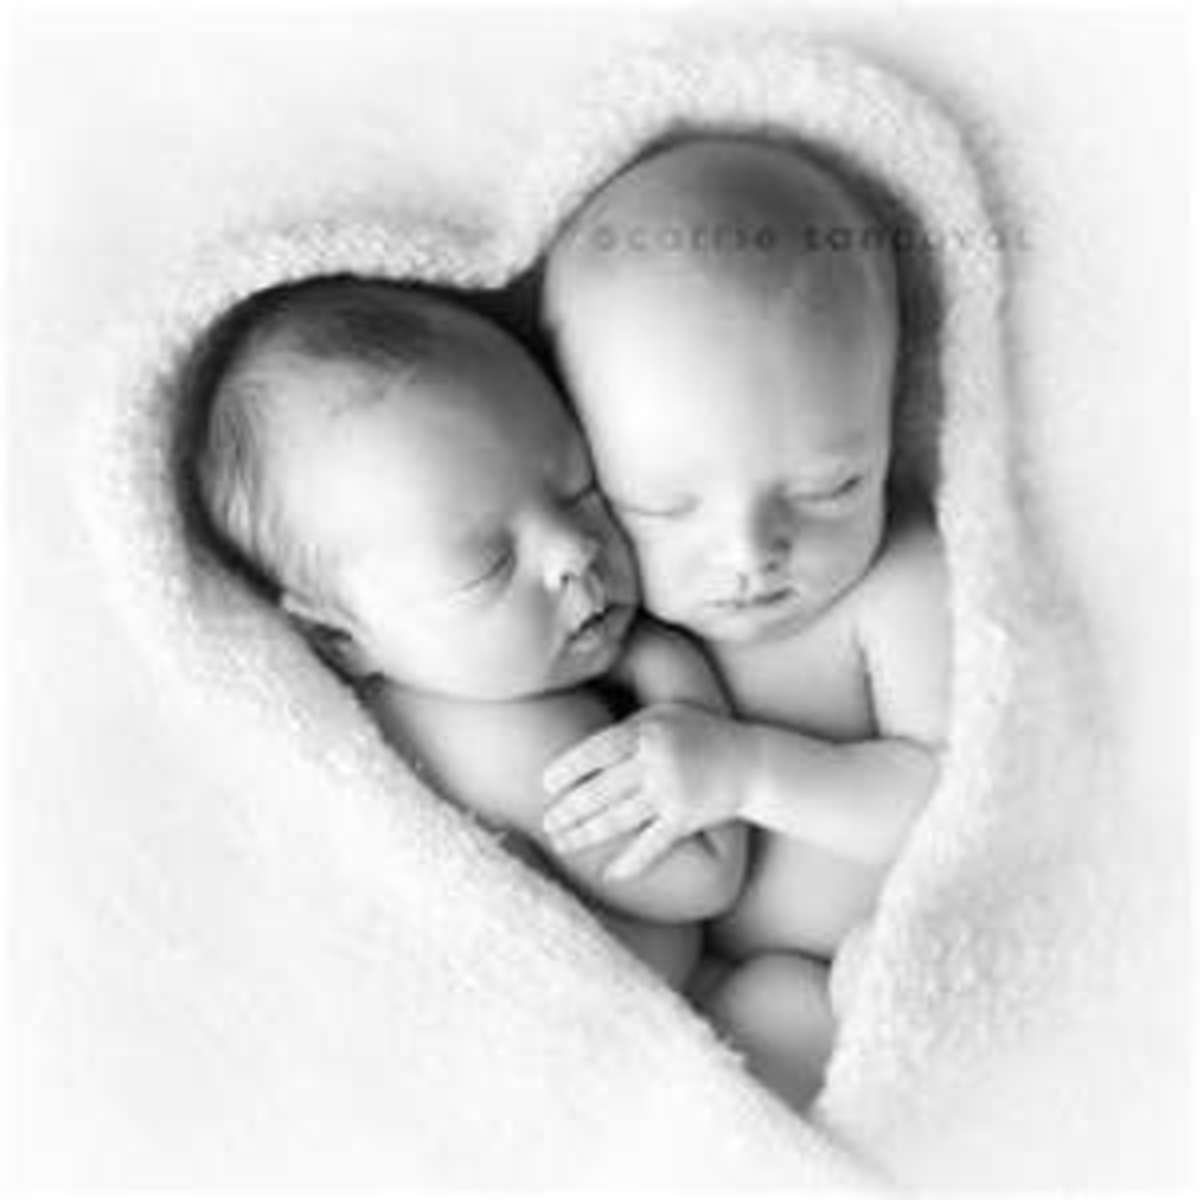 Newborn Twins and Multiples, Your Survival Guide To The First 4 Weeks